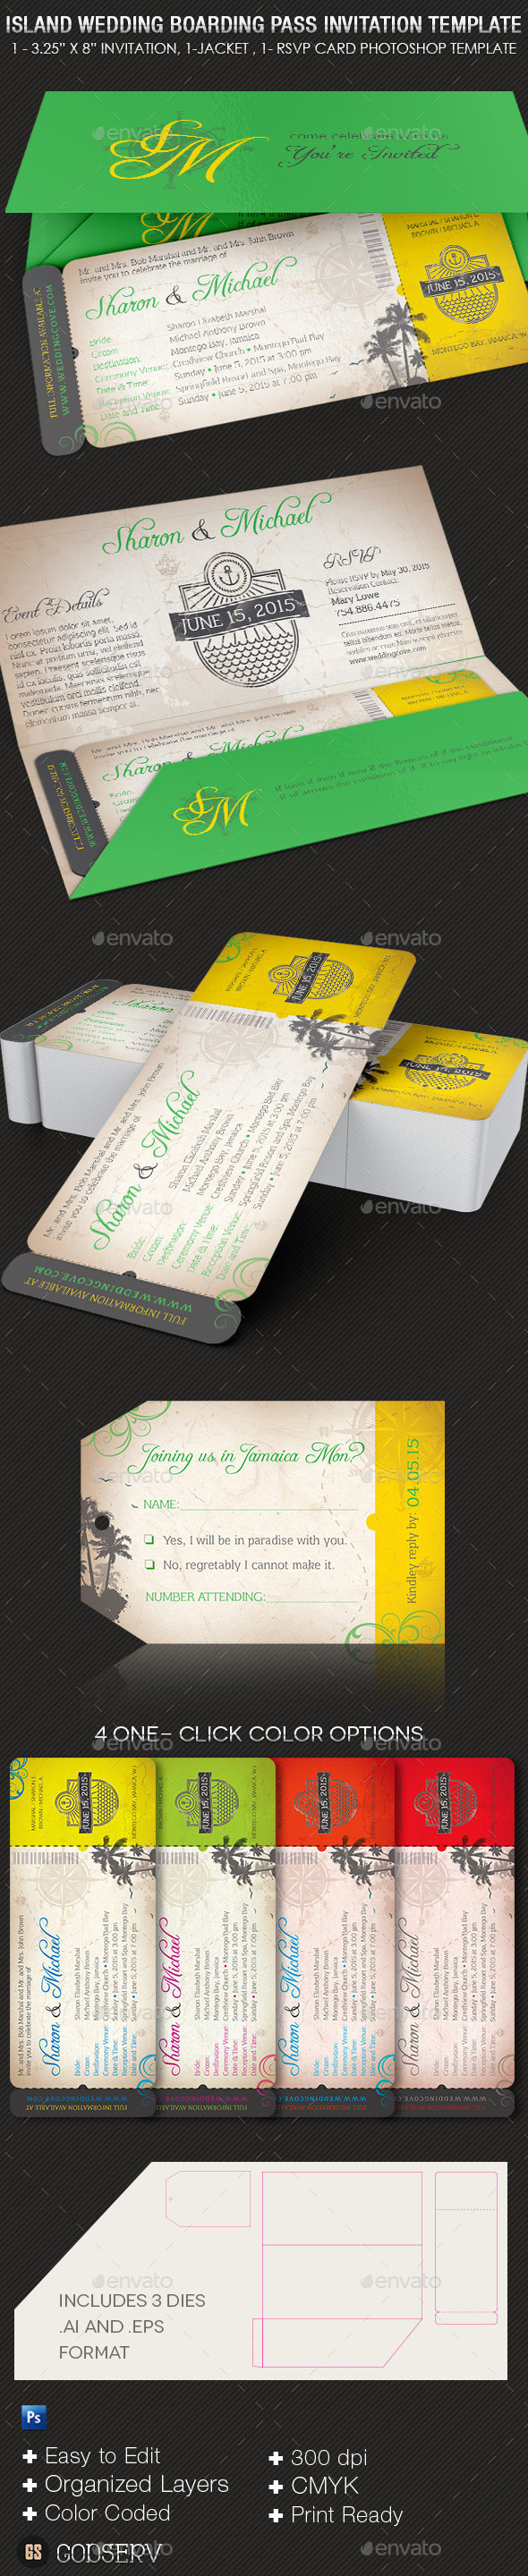 Island wedding boarding pass invitation template graphicmule island wedding boarding pass invitation template stopboris Image collections